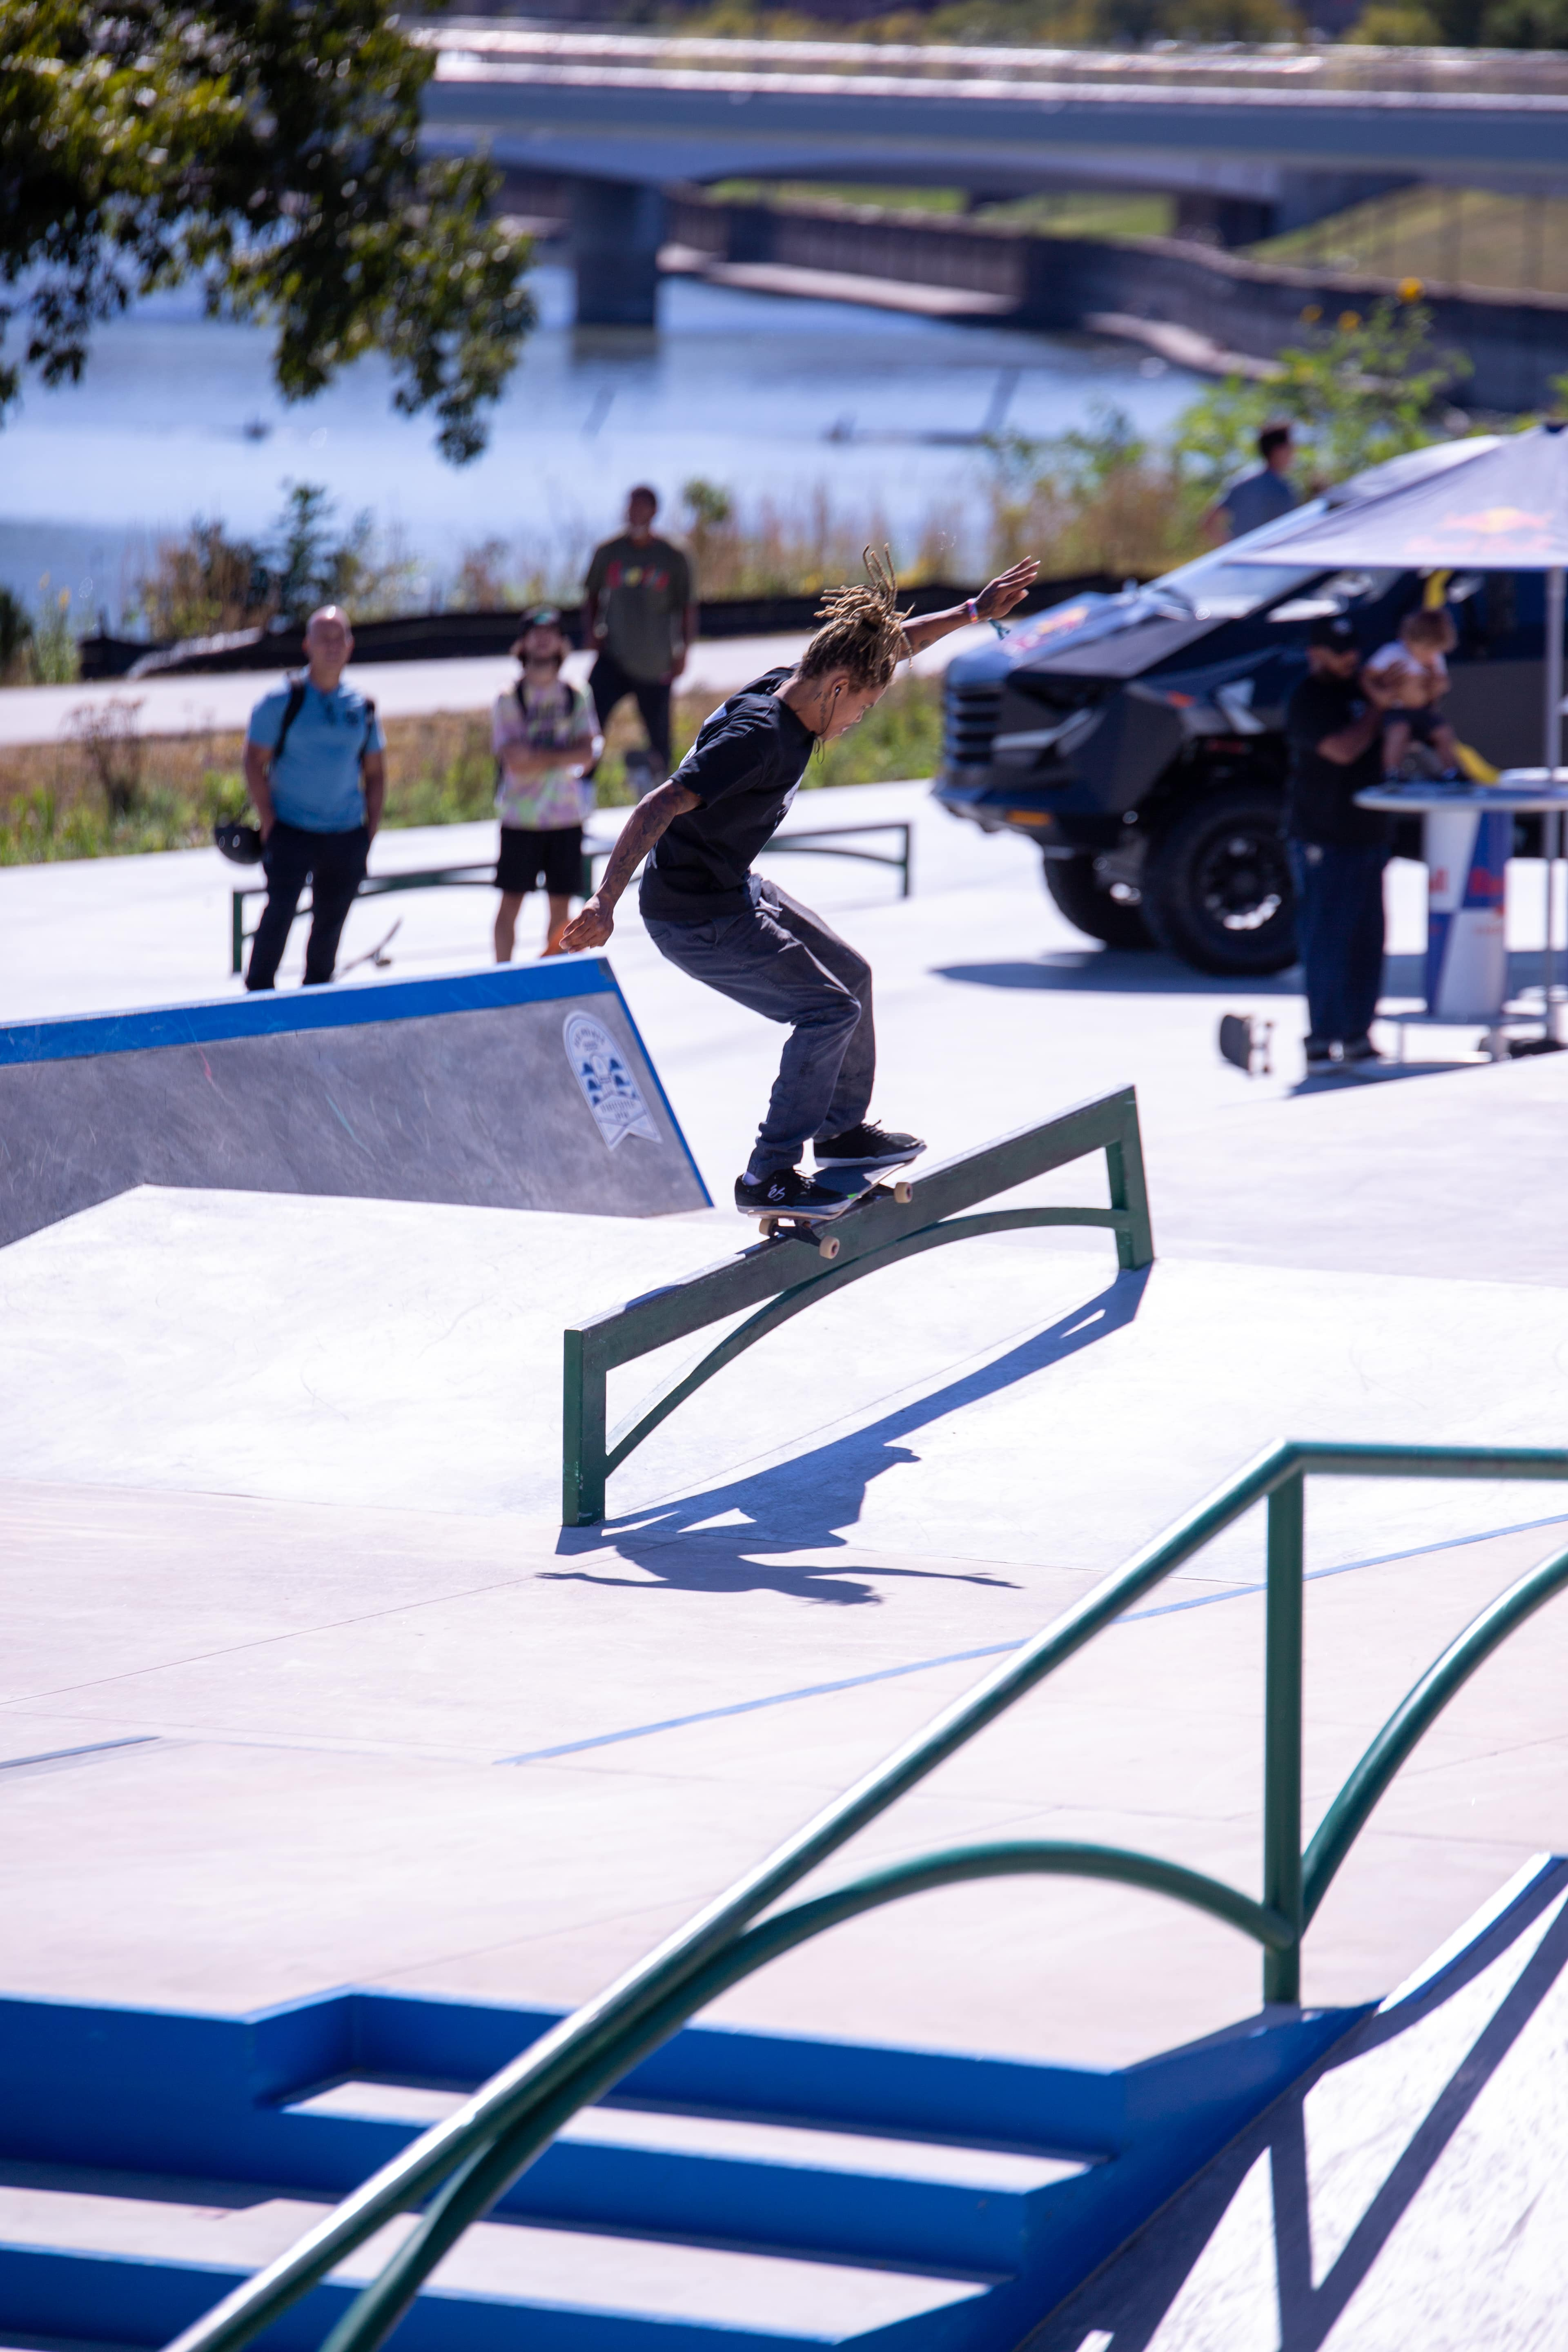 Des Moines Streetstyle Open 2021 - Going Up